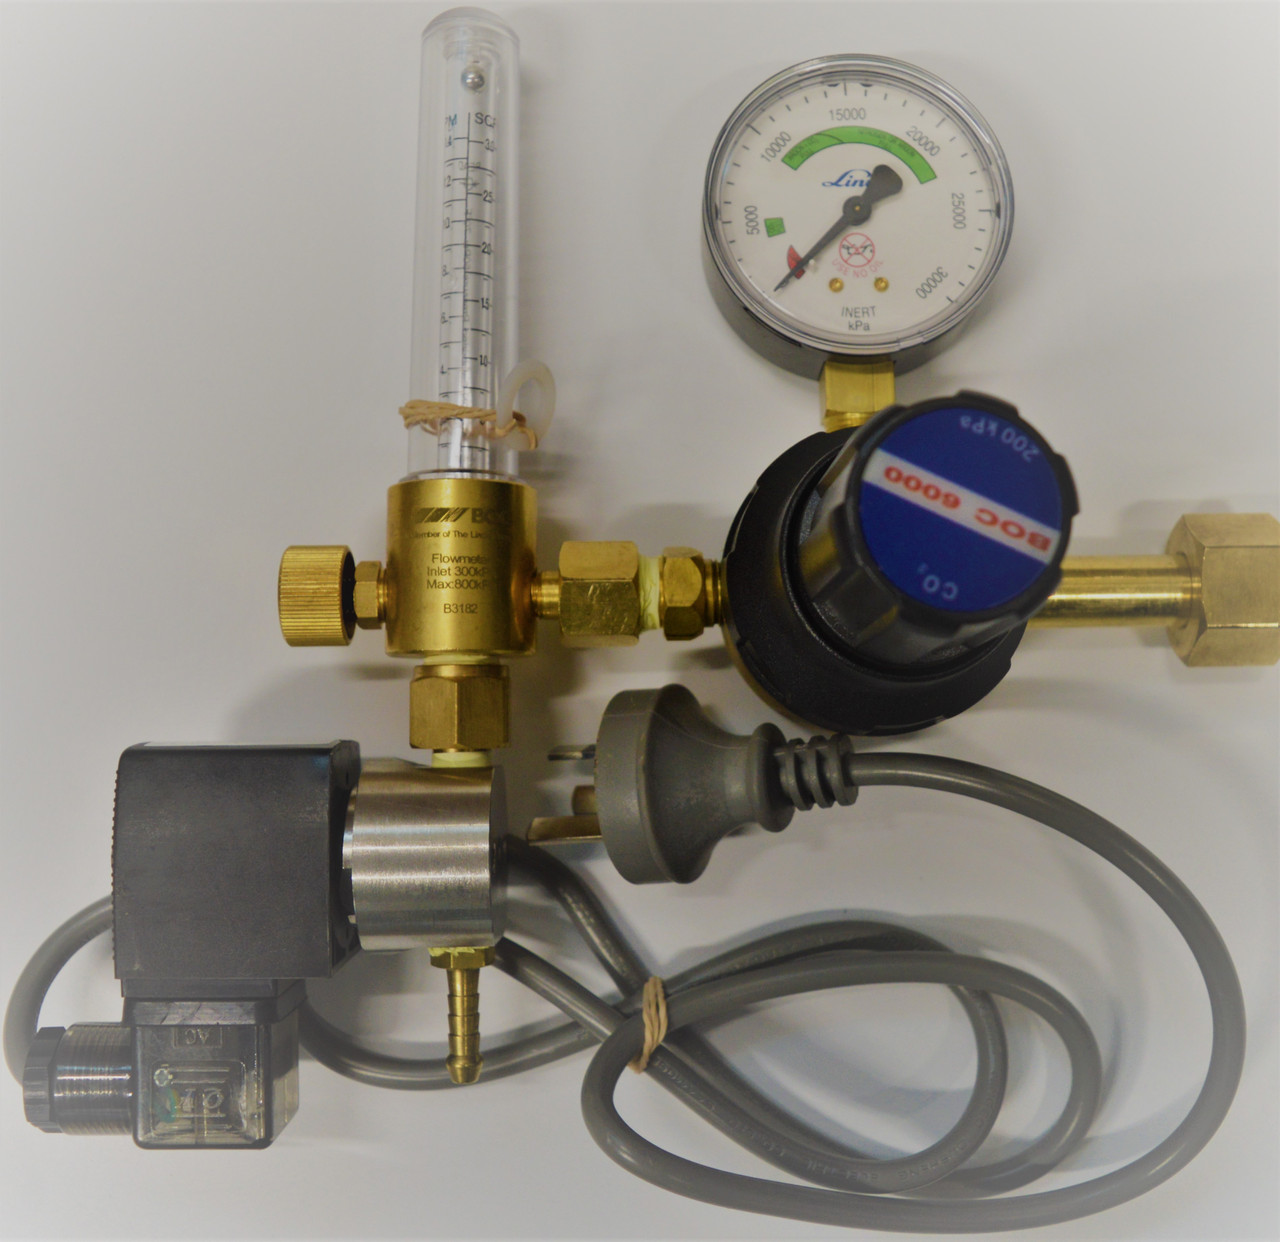 Co2 Flow Meter and Regulator